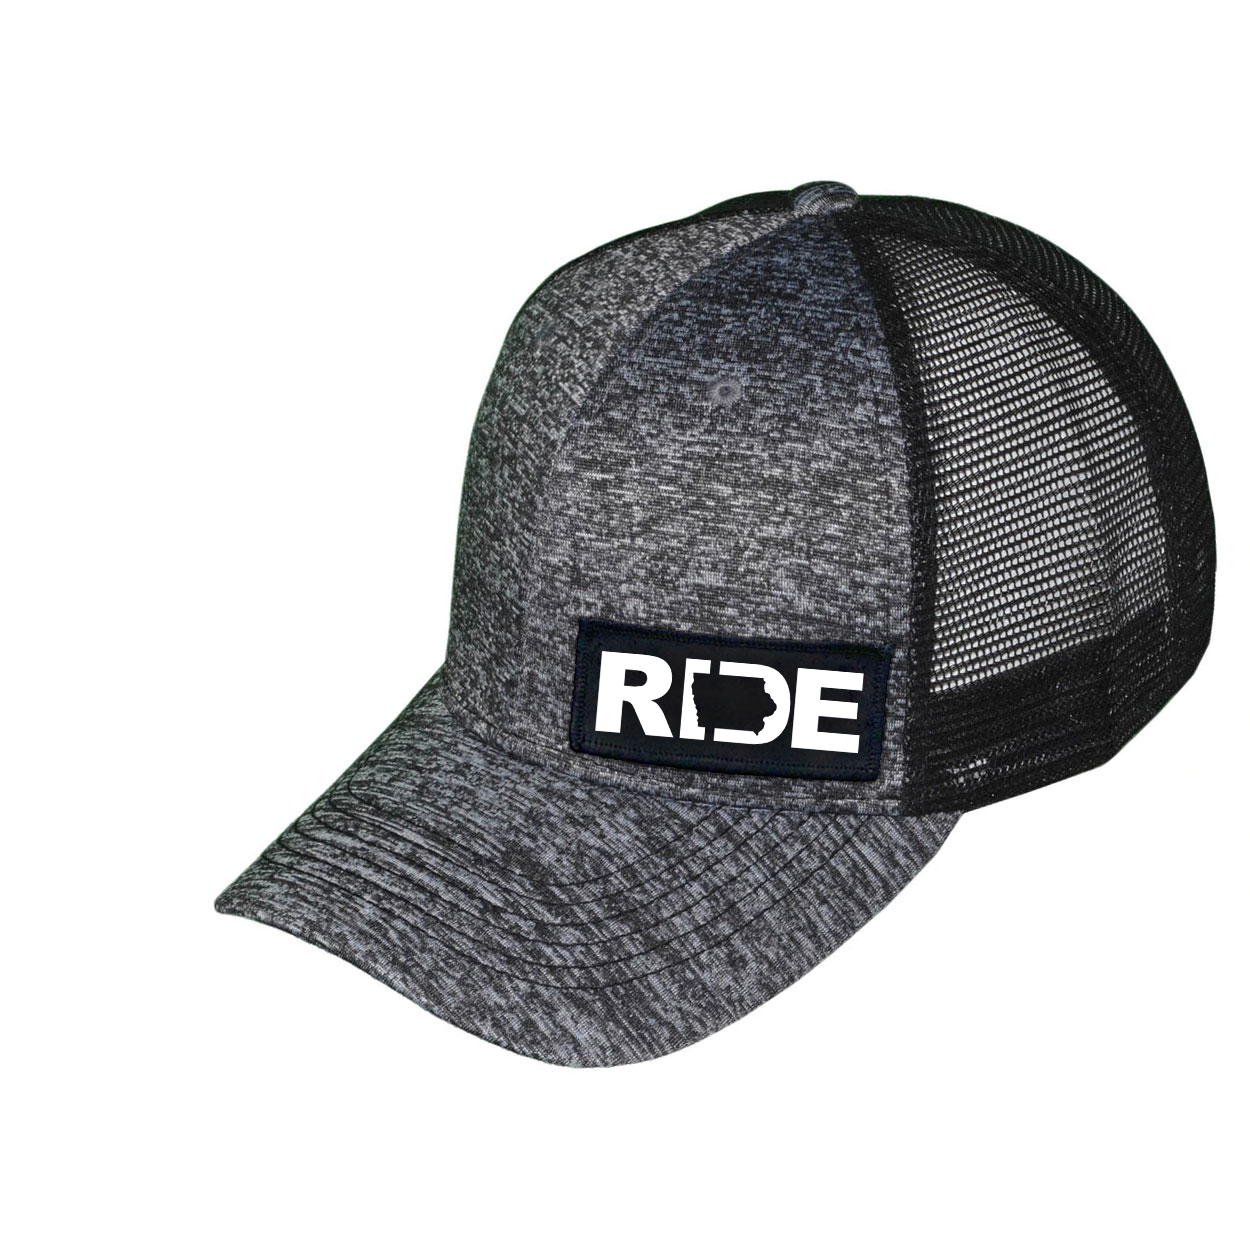 Ride Iowa Night Out Woven Patch Melange Snapback Trucker Hat Gray/Black (White Logo)